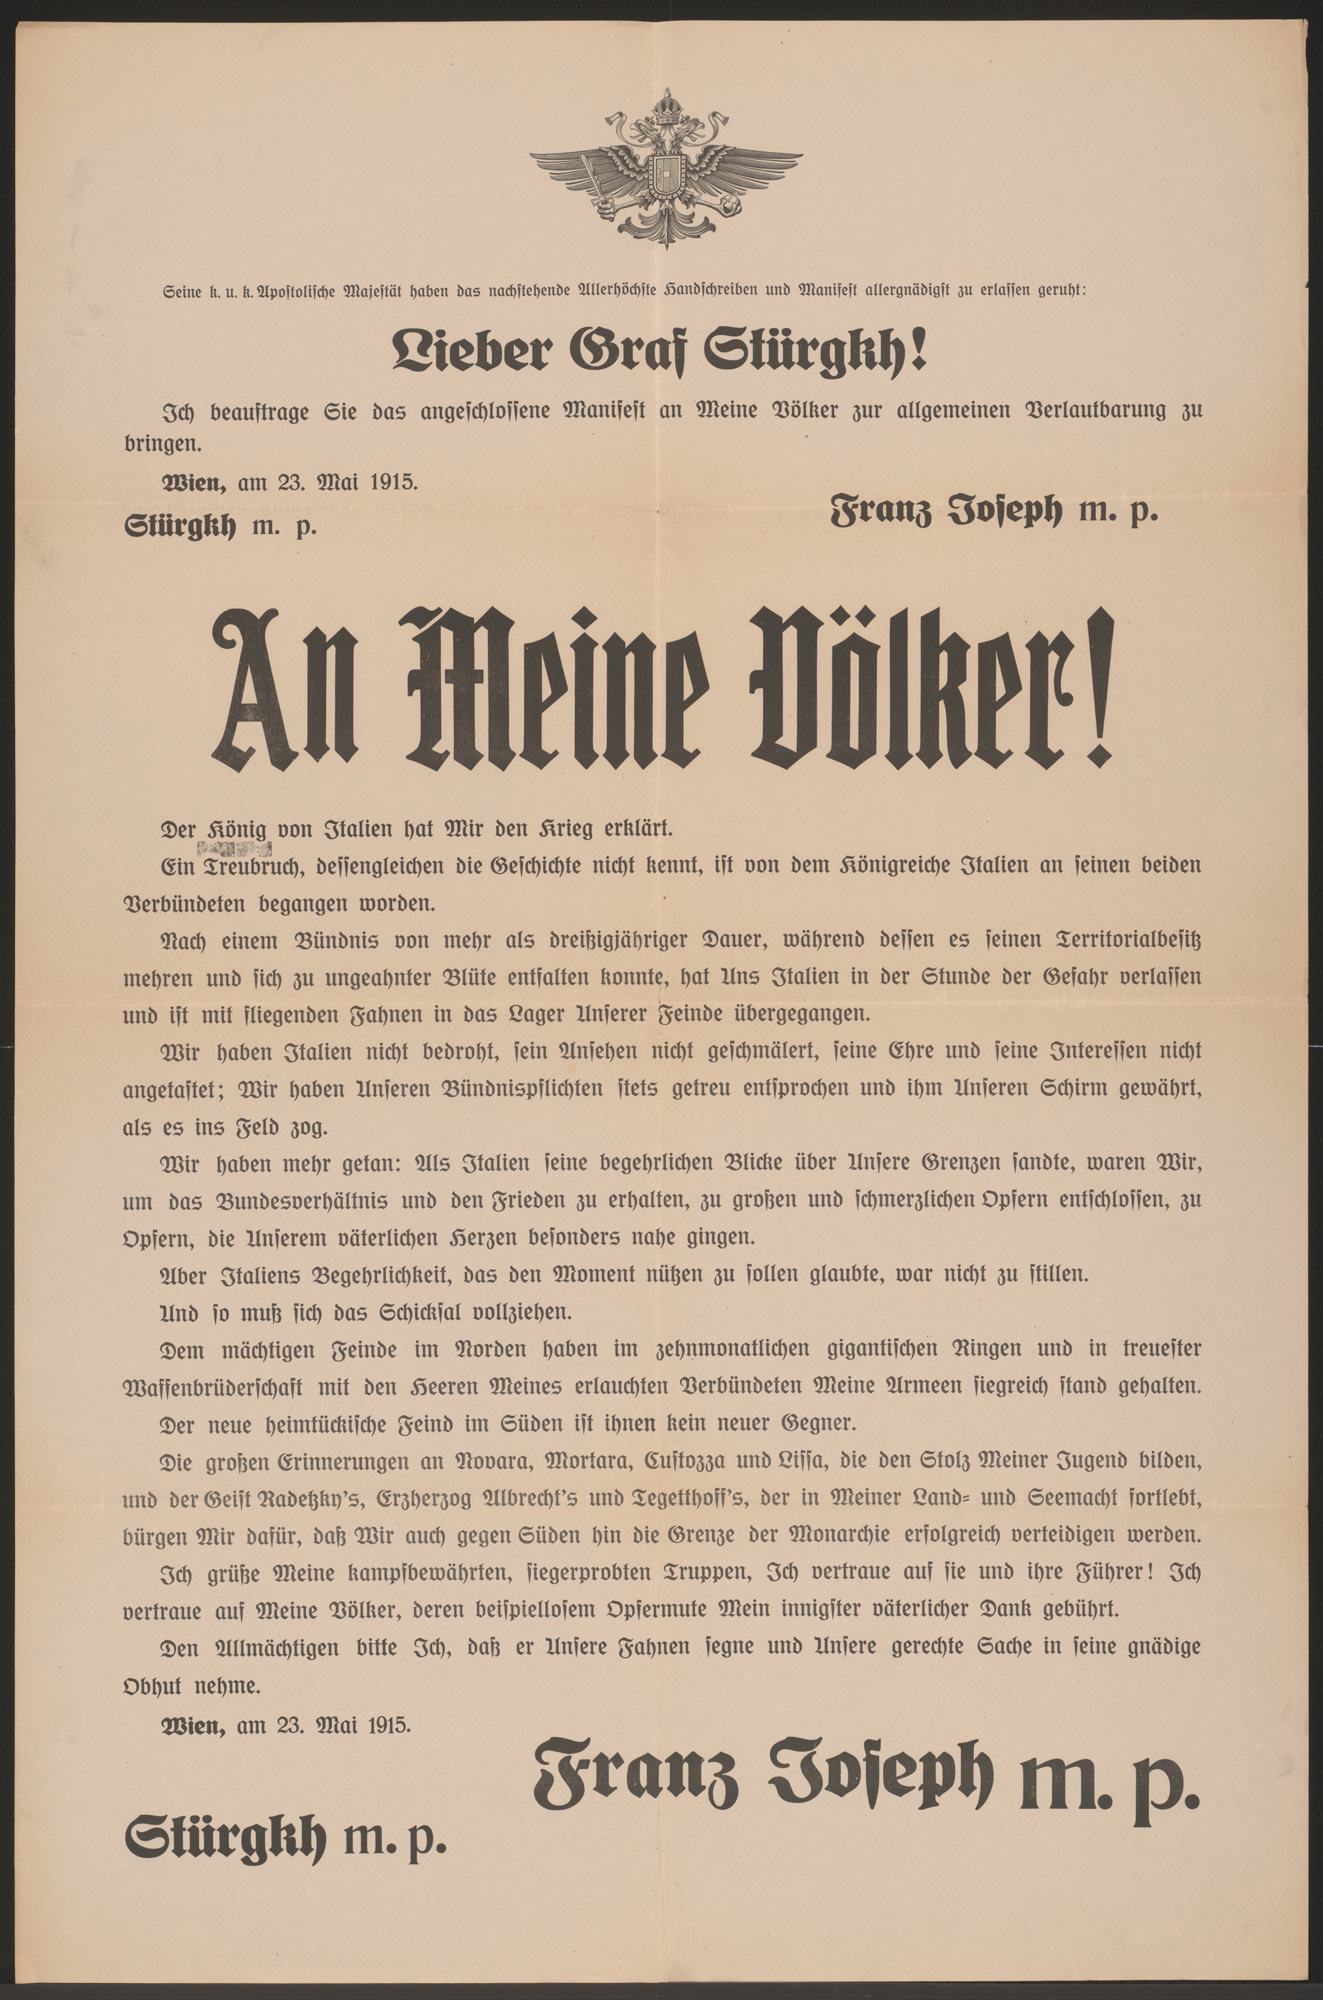 'The King of Italy has declared war on me': a proclamation from Emperor Franz Joseph I to the people of the Austro-Hungarian Empire, May 1915.